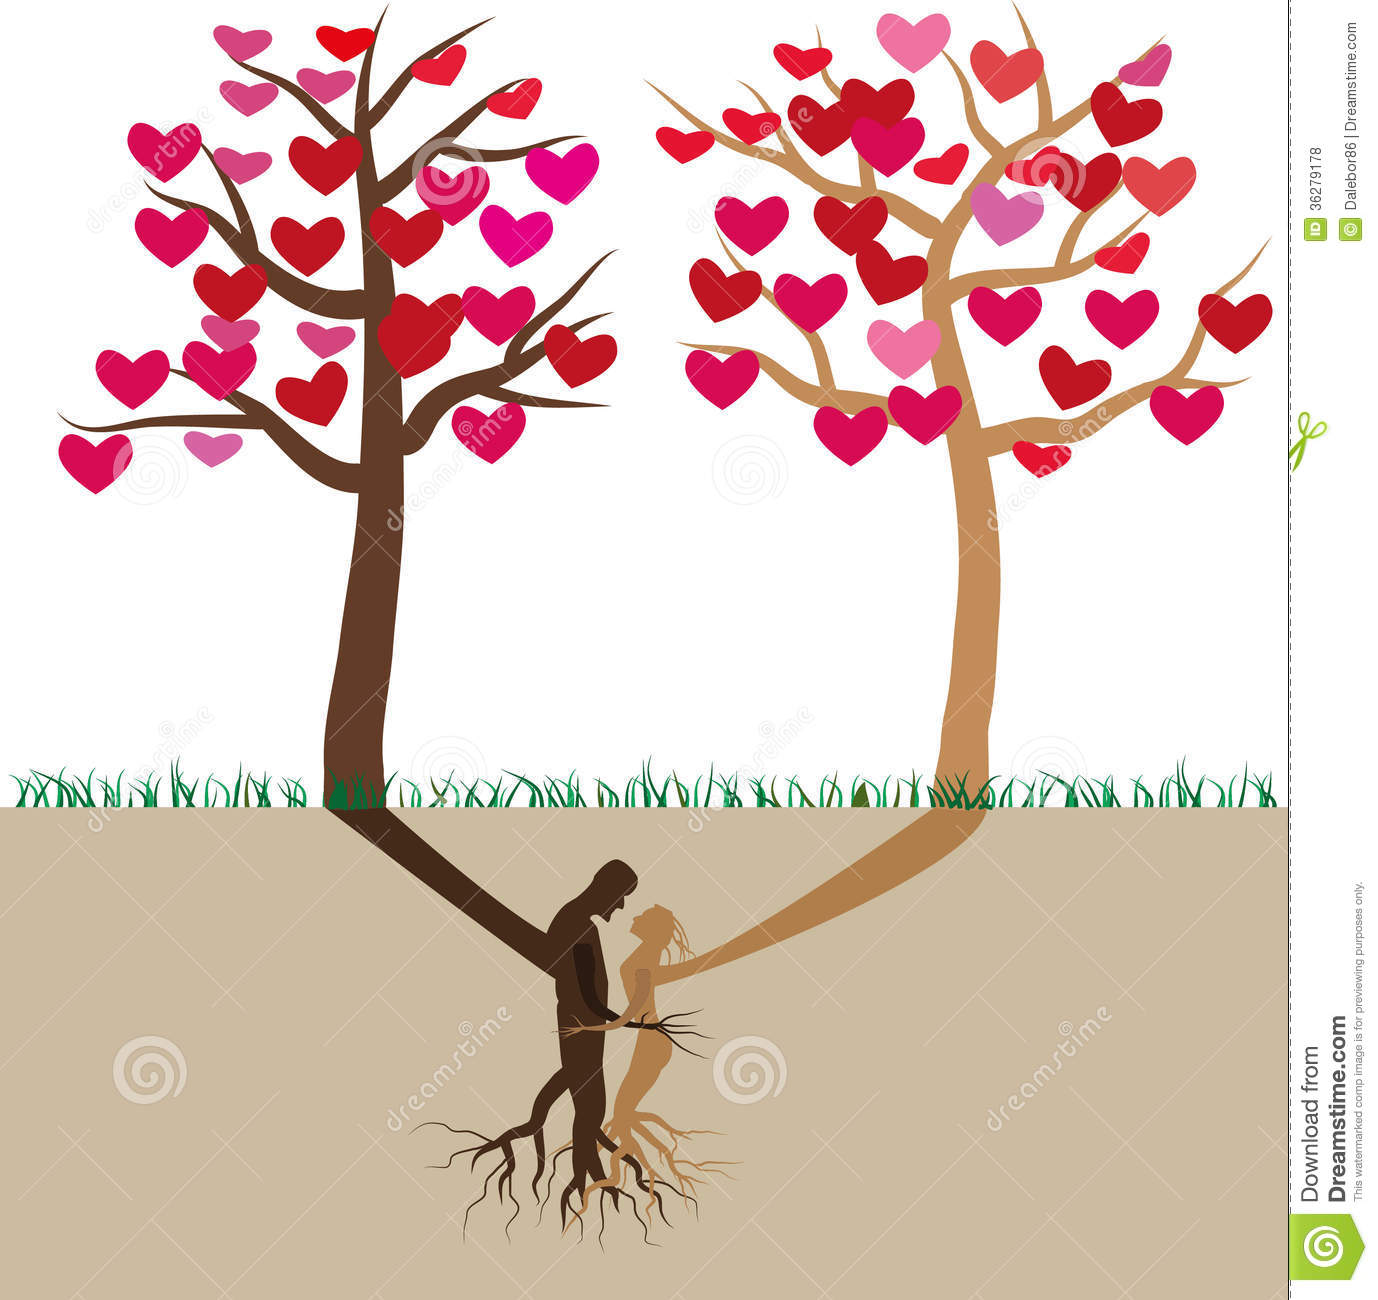 Tree In Love Royalty Free Stock Photos Image 36279178